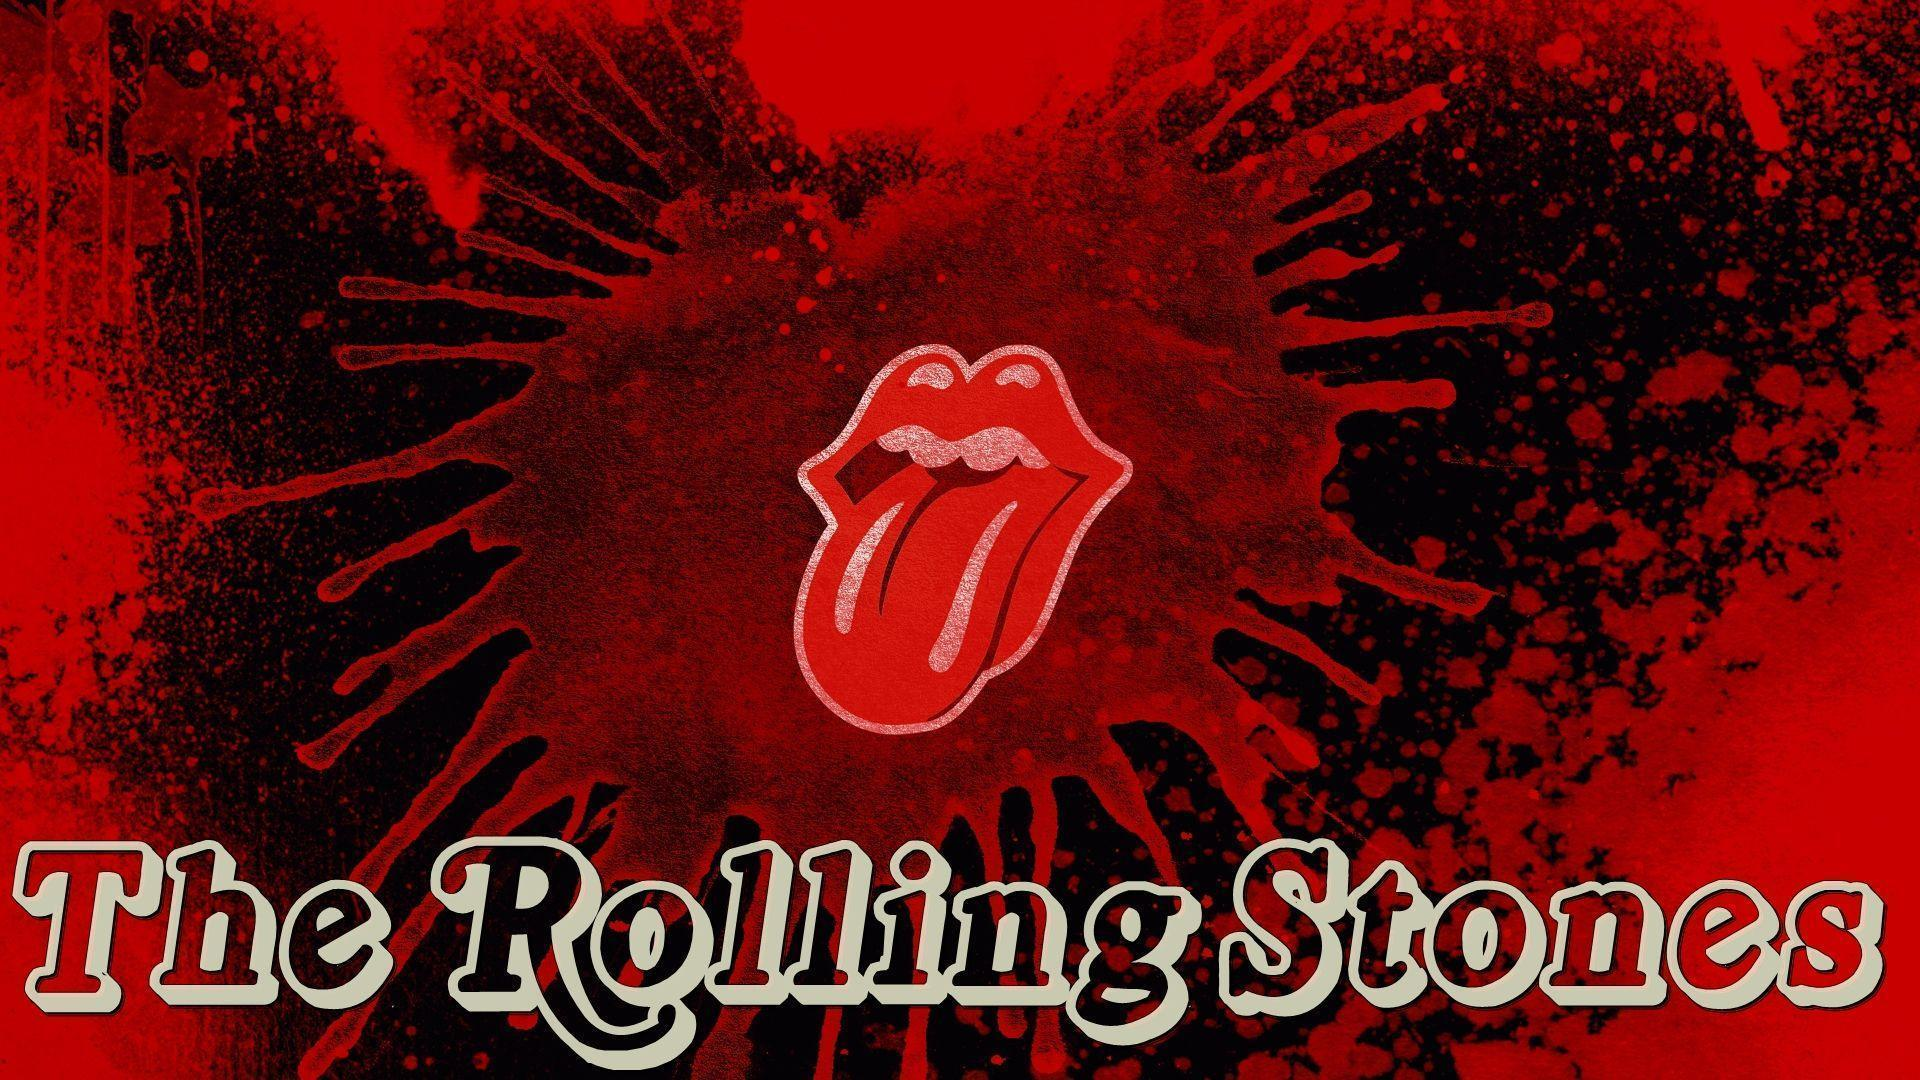 The Rolling Stones Wallpapers Wallpaper Cave